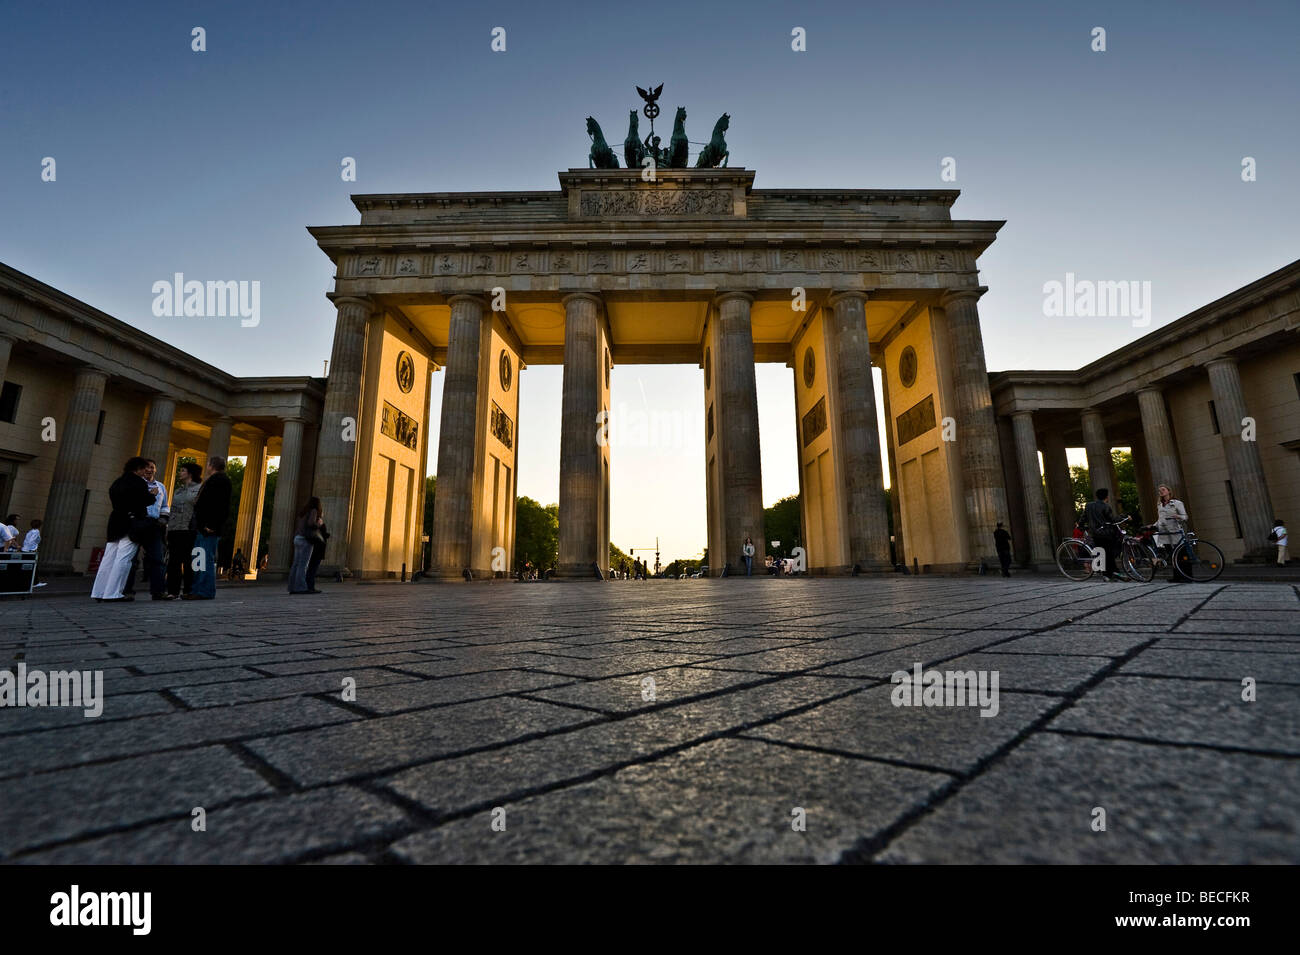 Brandenburg Gate, Berlin, Germany, Europe Stock Photo